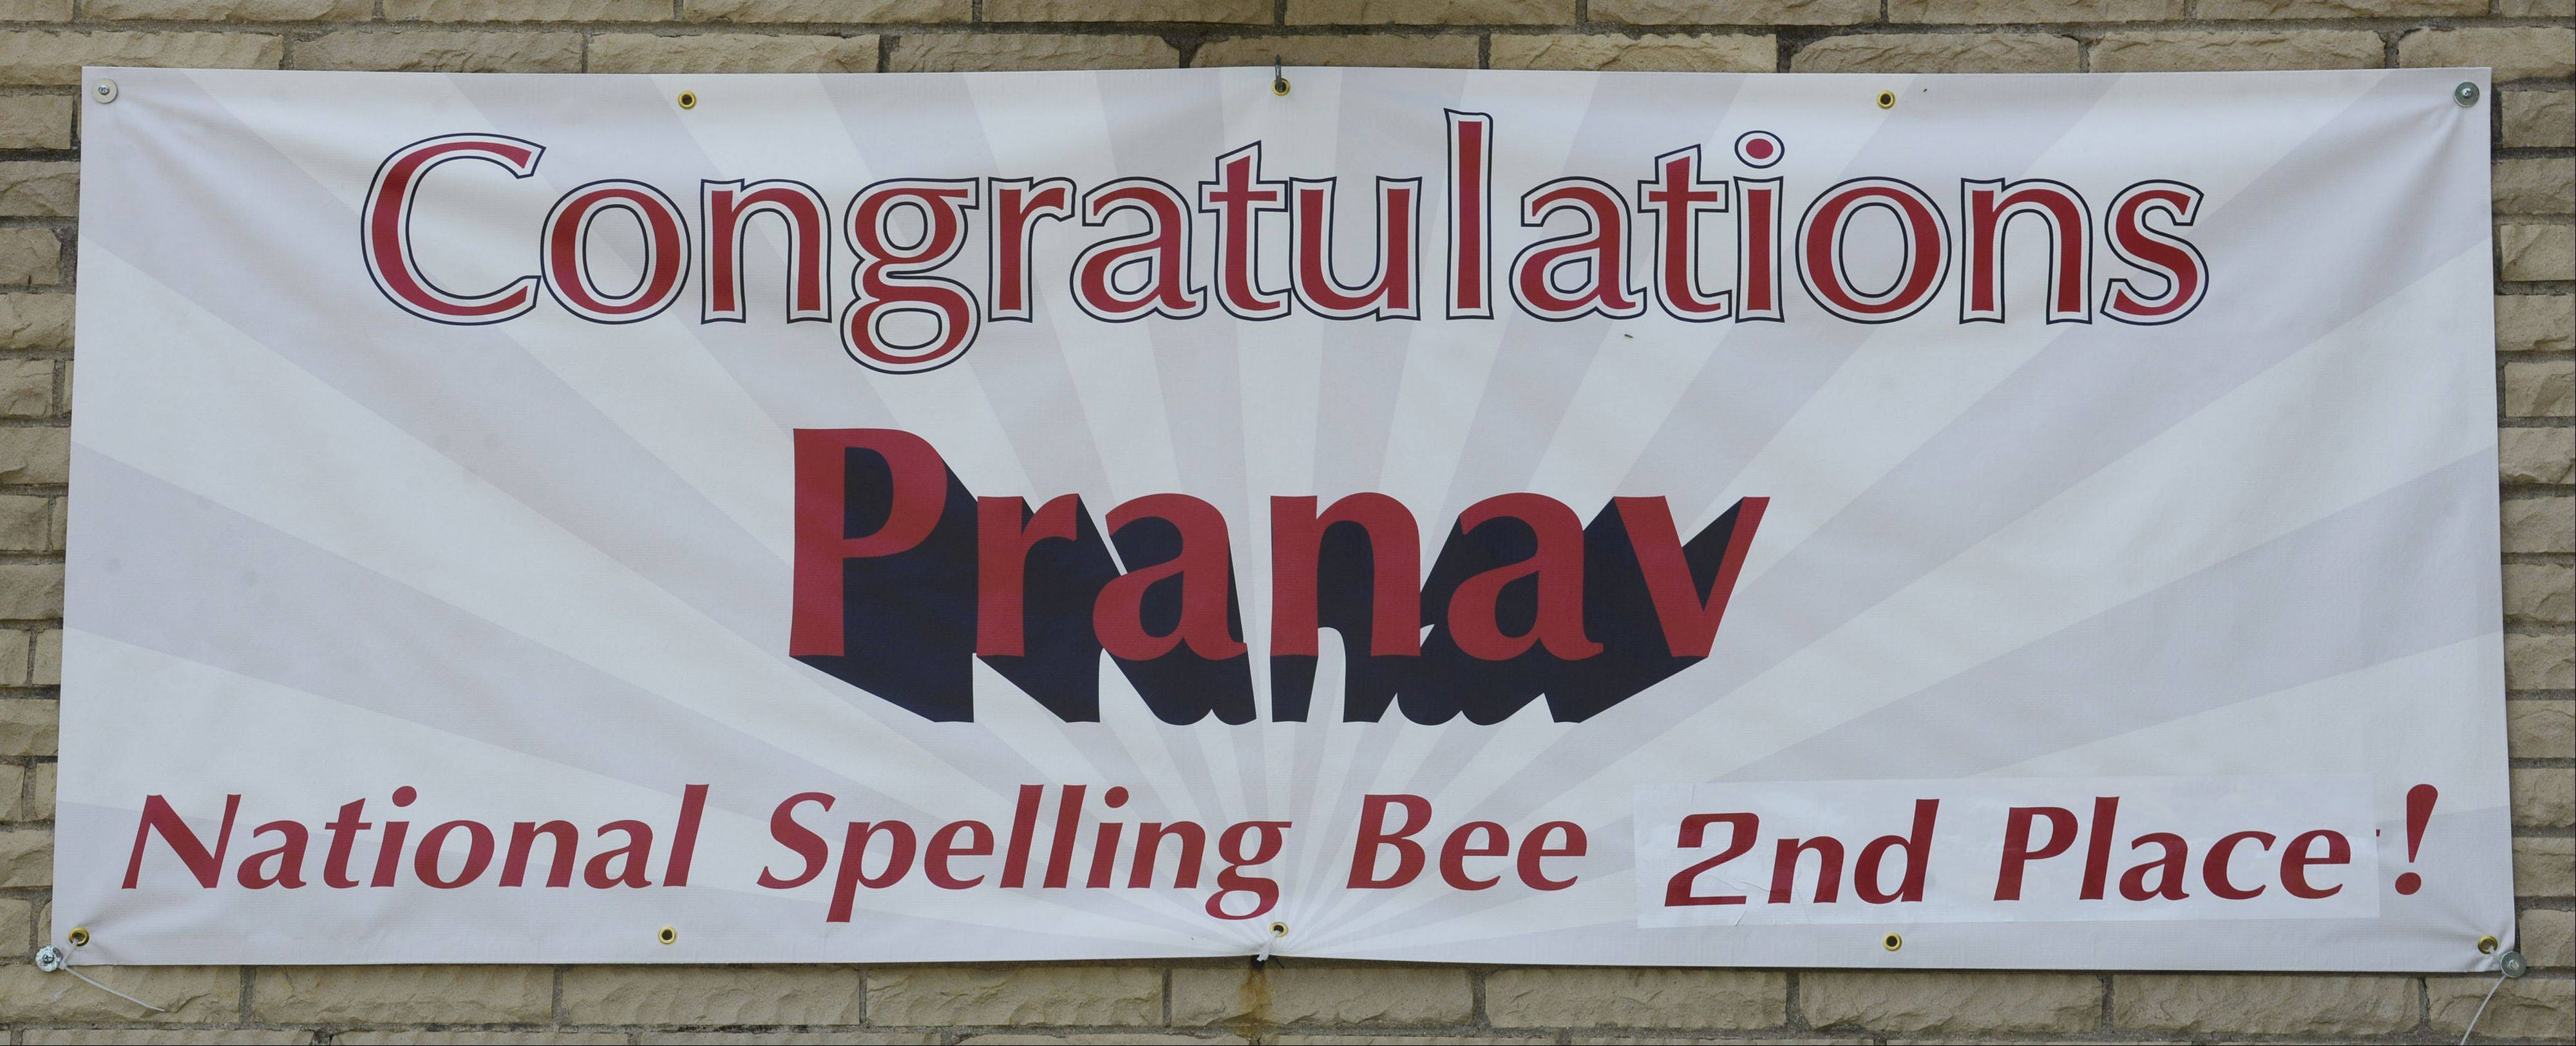 An updated banner outside Station Middle School in Barrington recognizes the second-place finish by student Pranav Sivakumar in the 86th Scripps National Spelling Bee.